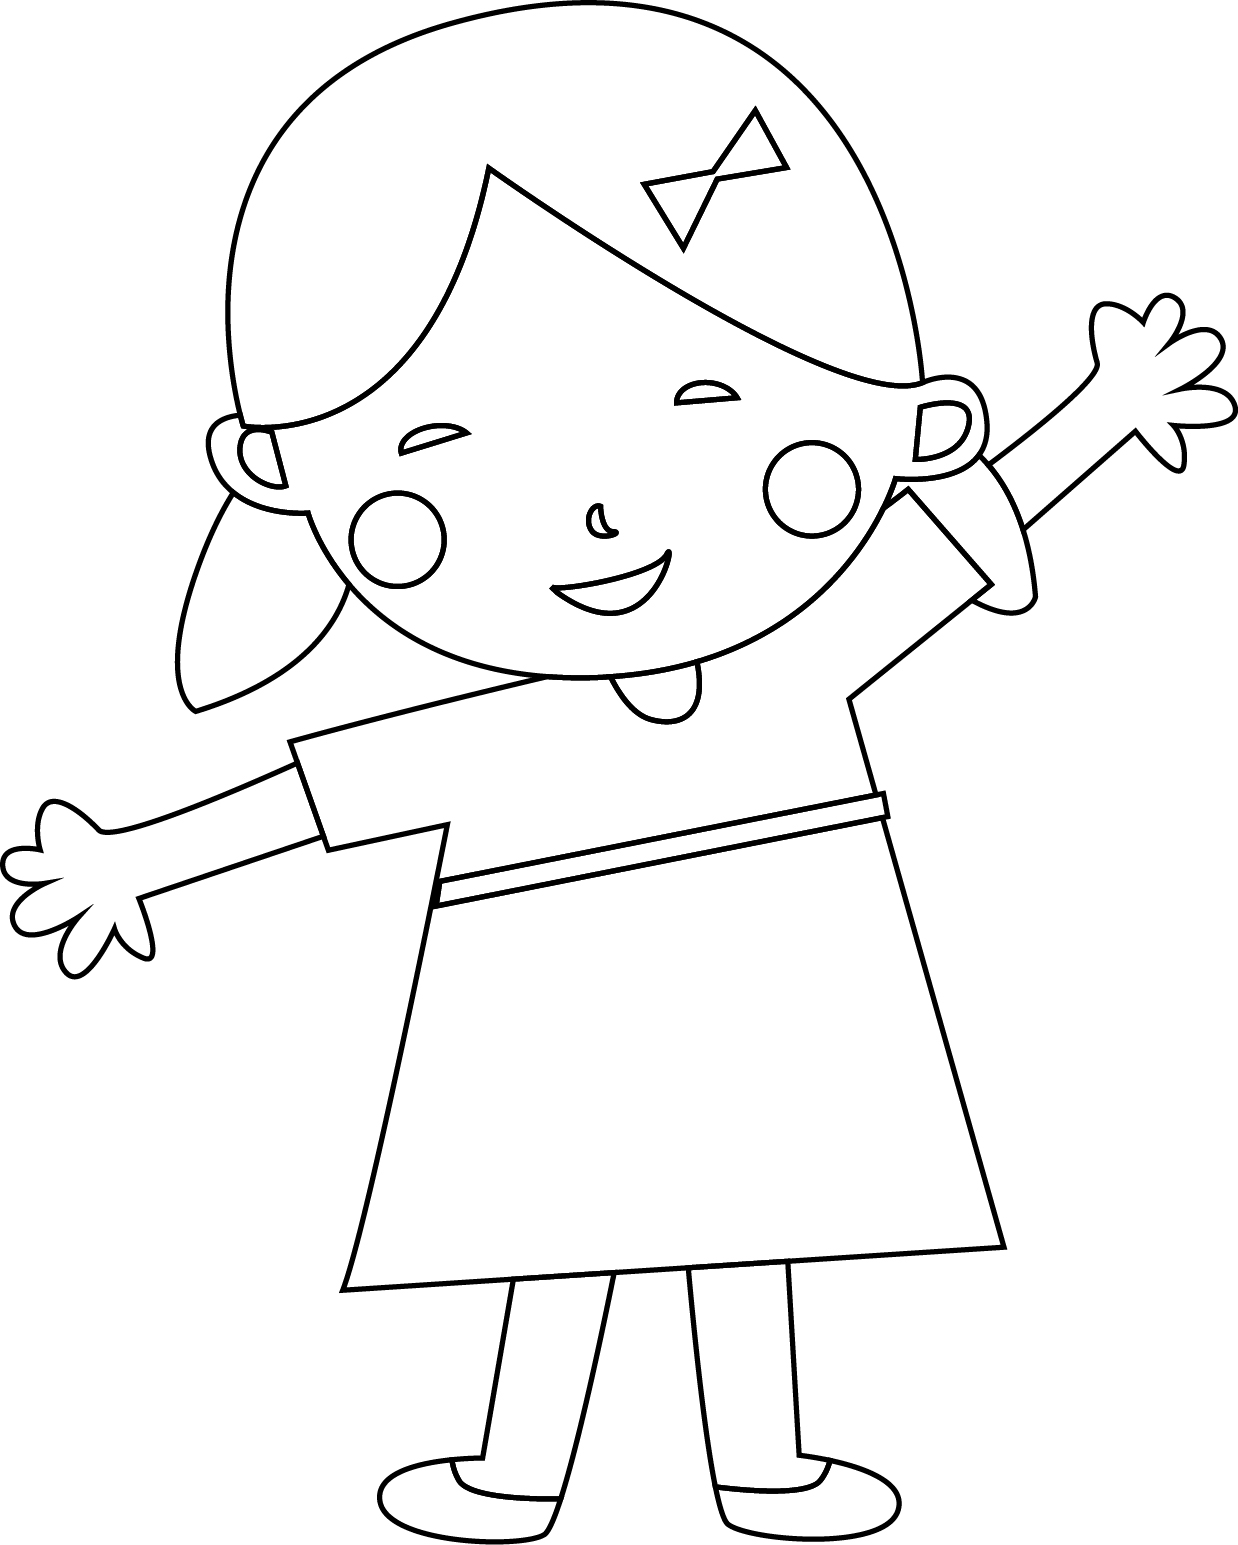 Child coloring page for Photo to coloring page